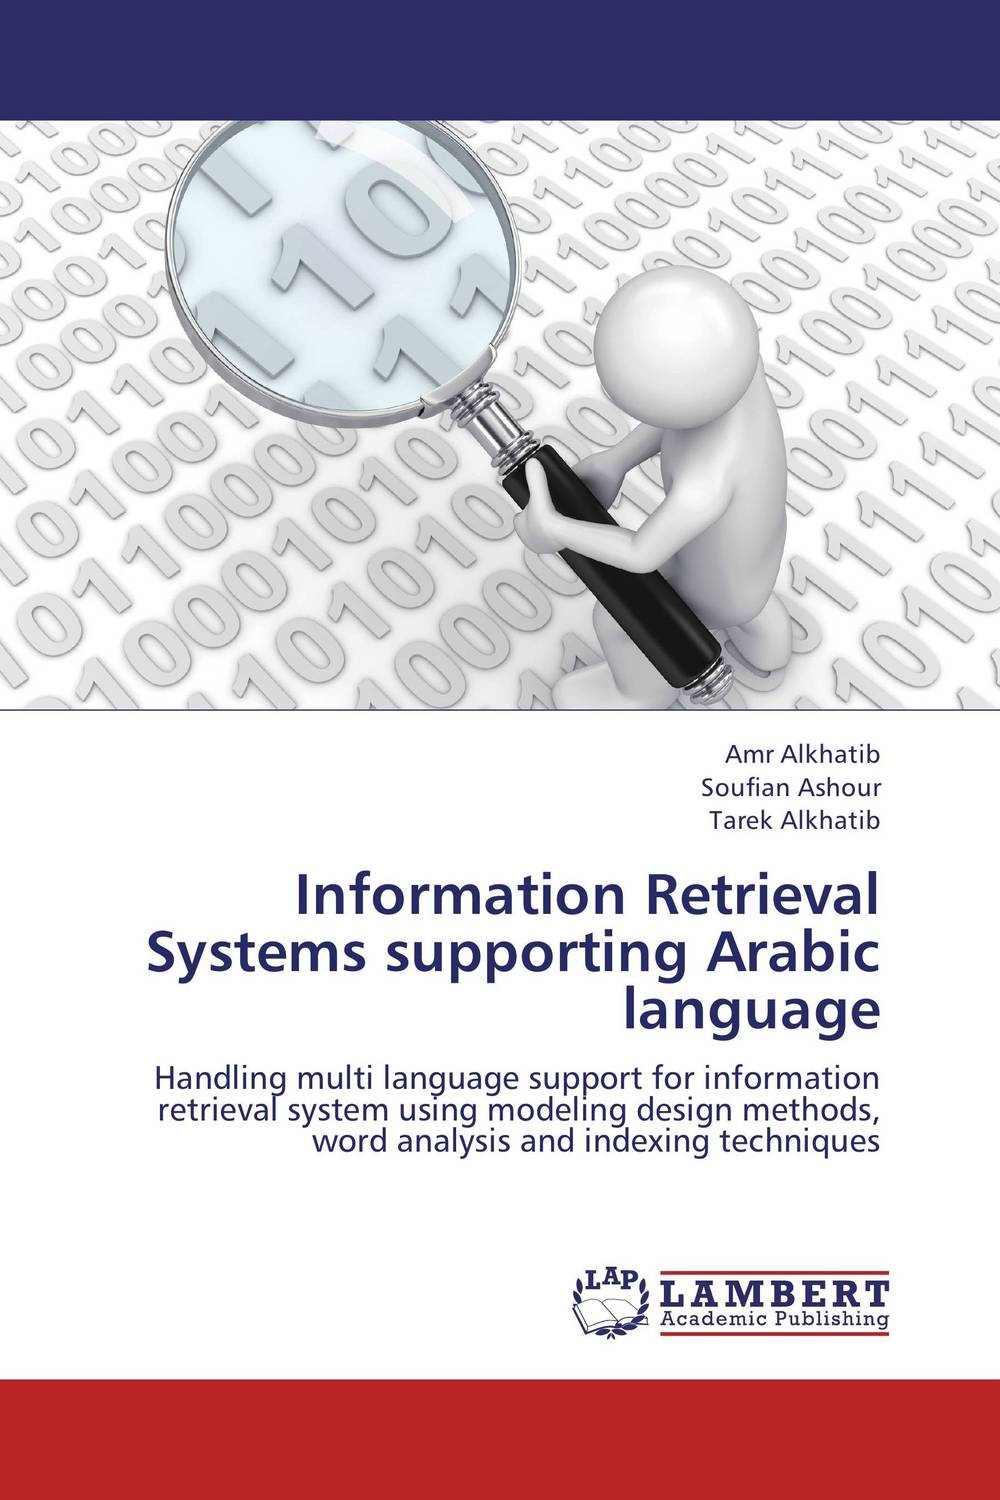 Information Retrieval Systems supporting Arabic language web based project information system